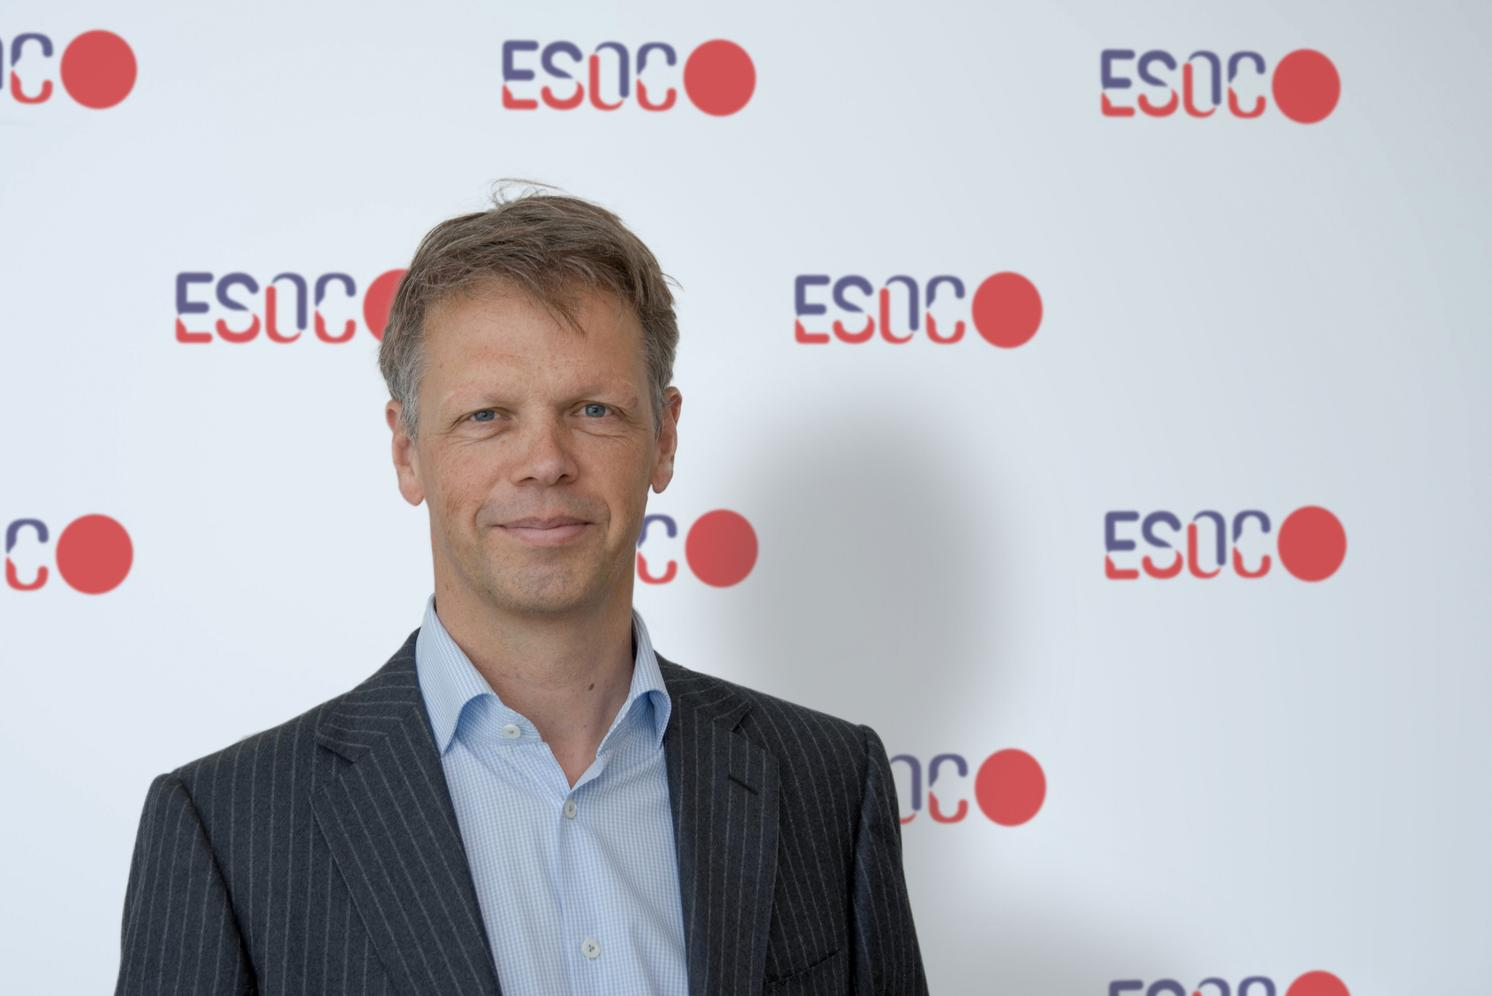 Martin Dichgans, ISD as President of ESOC